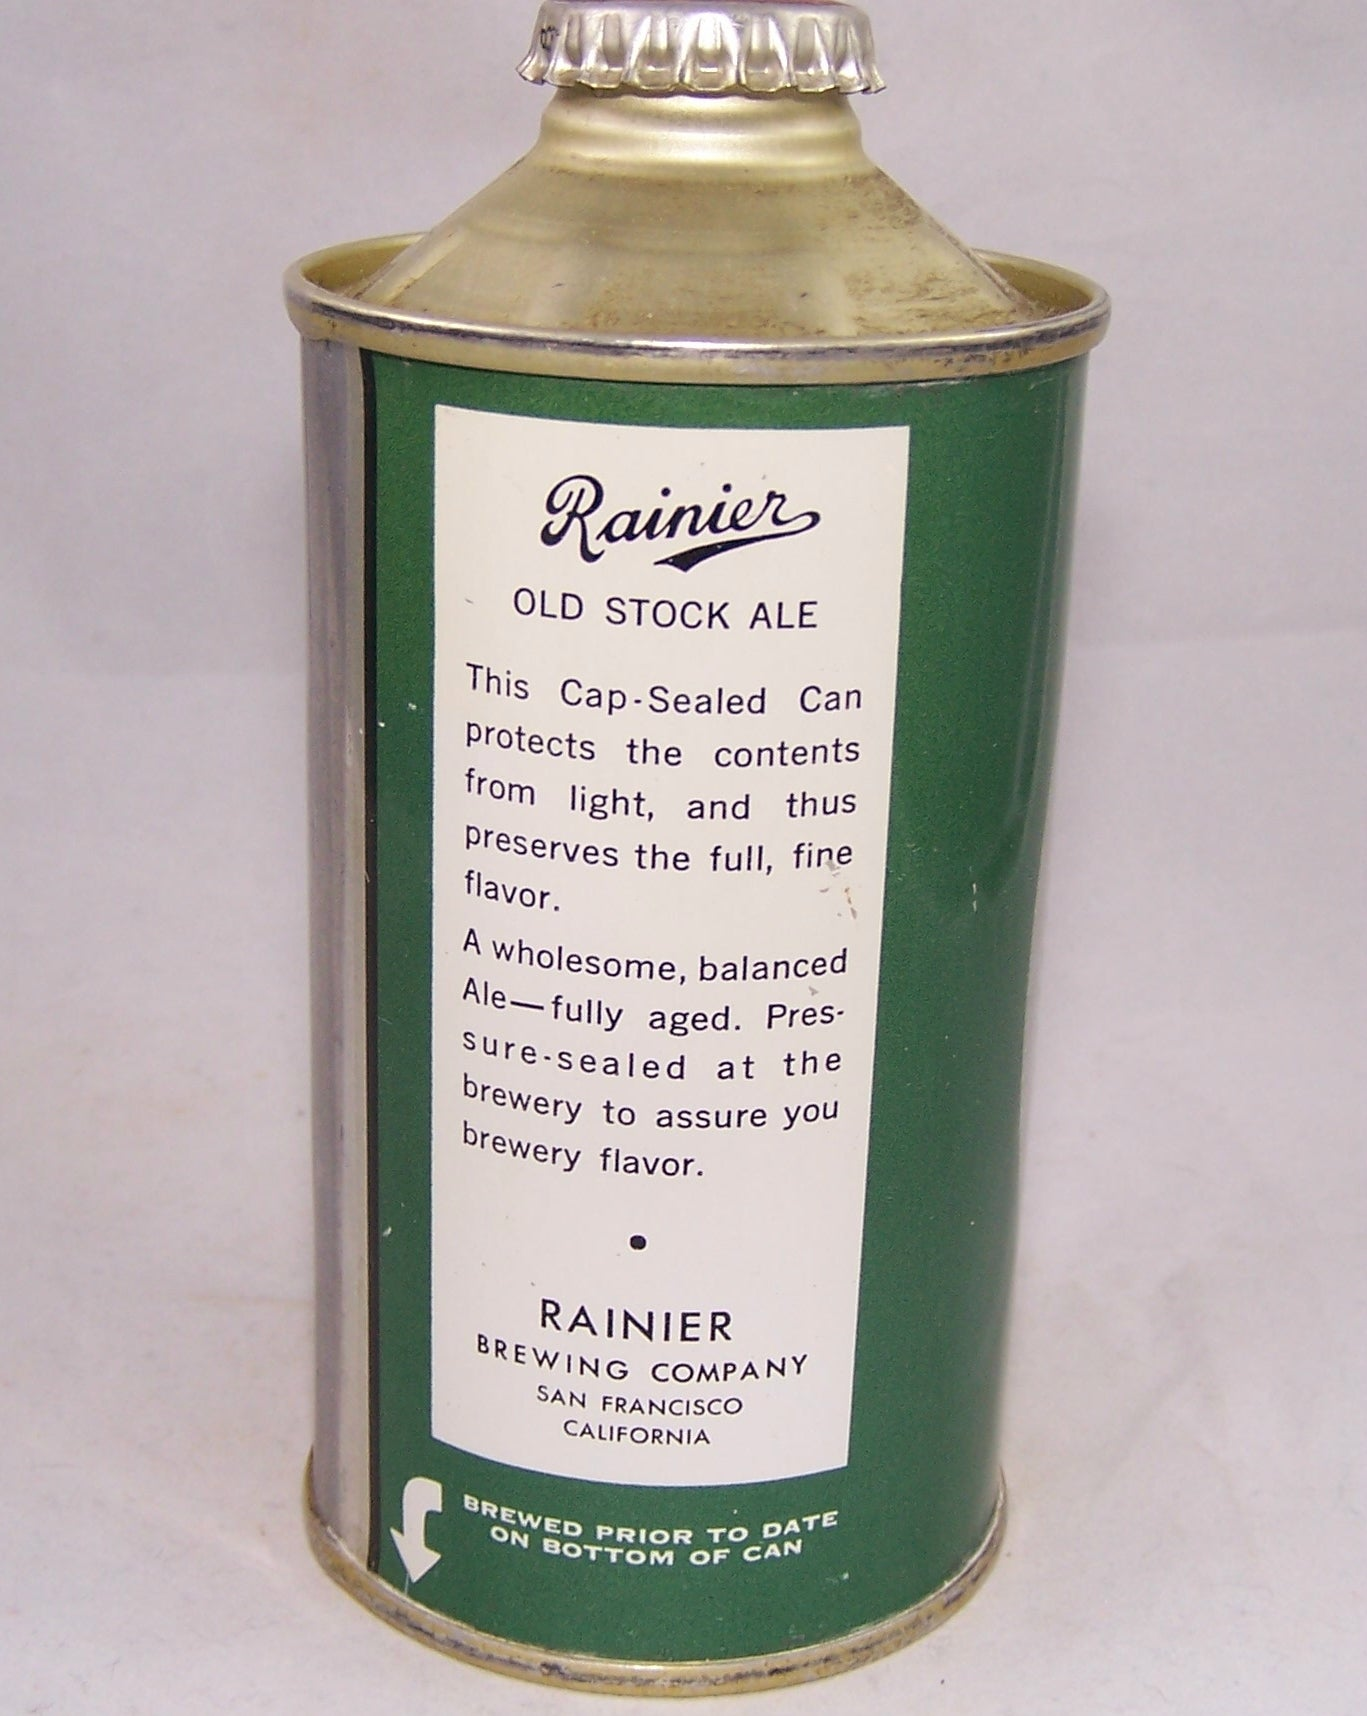 Rainier Old Stock Ale, USBC 180-03, Grade A1+ Sold on 09/01/17